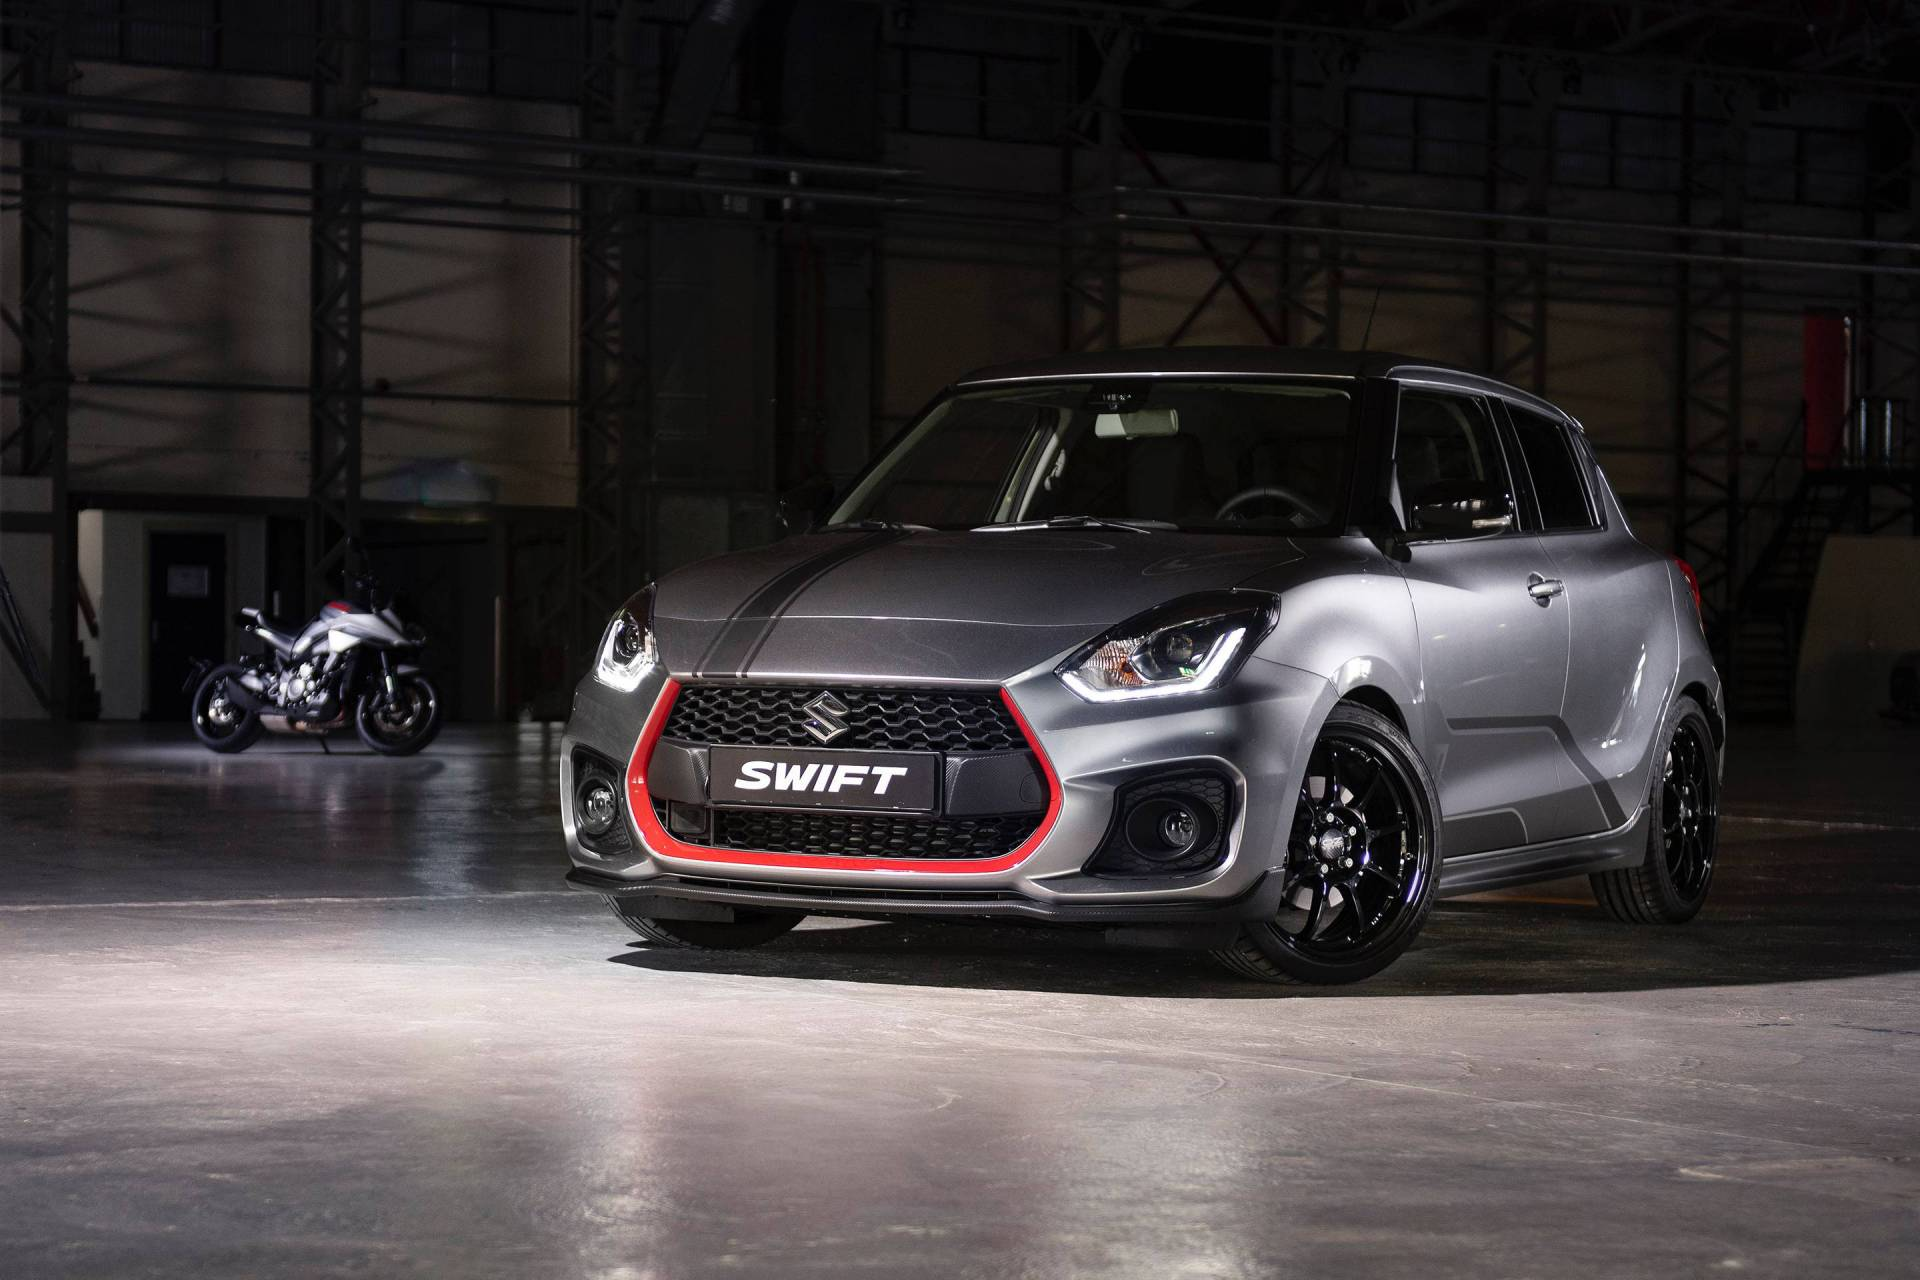 f30d3190-2019-suzuki-swift-sport-katana-limited-edition-9